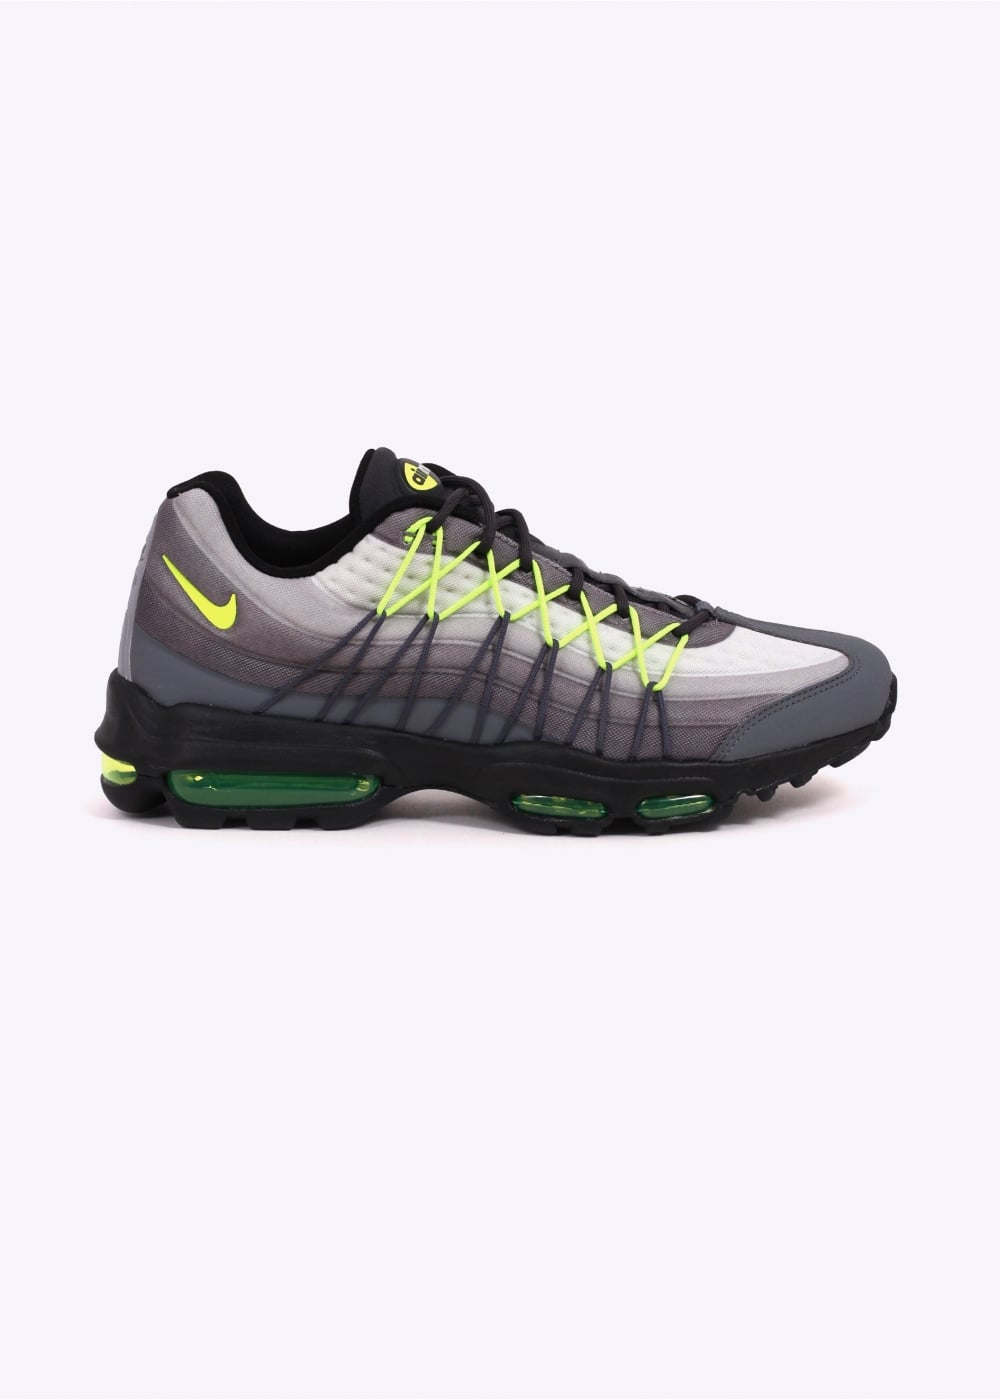 Nike Footwear Air Max 95 Ultra SE Dark Grey Volt